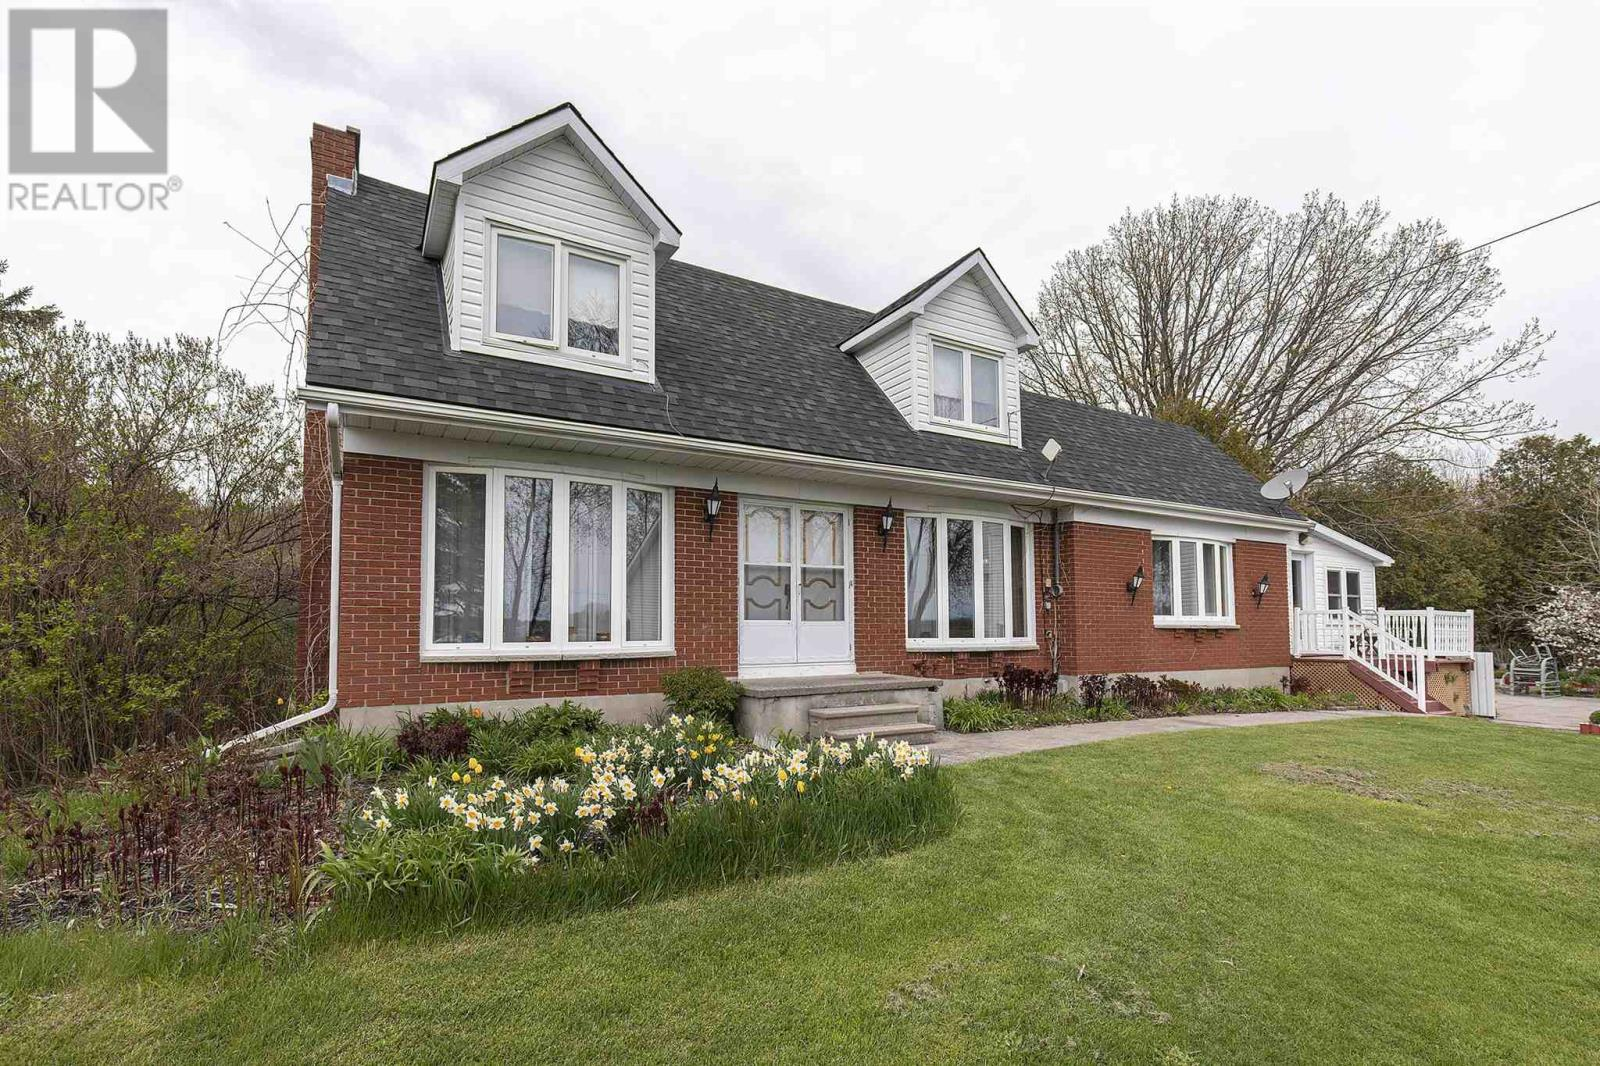 393 PERRY RD, greater napanee, Ontario